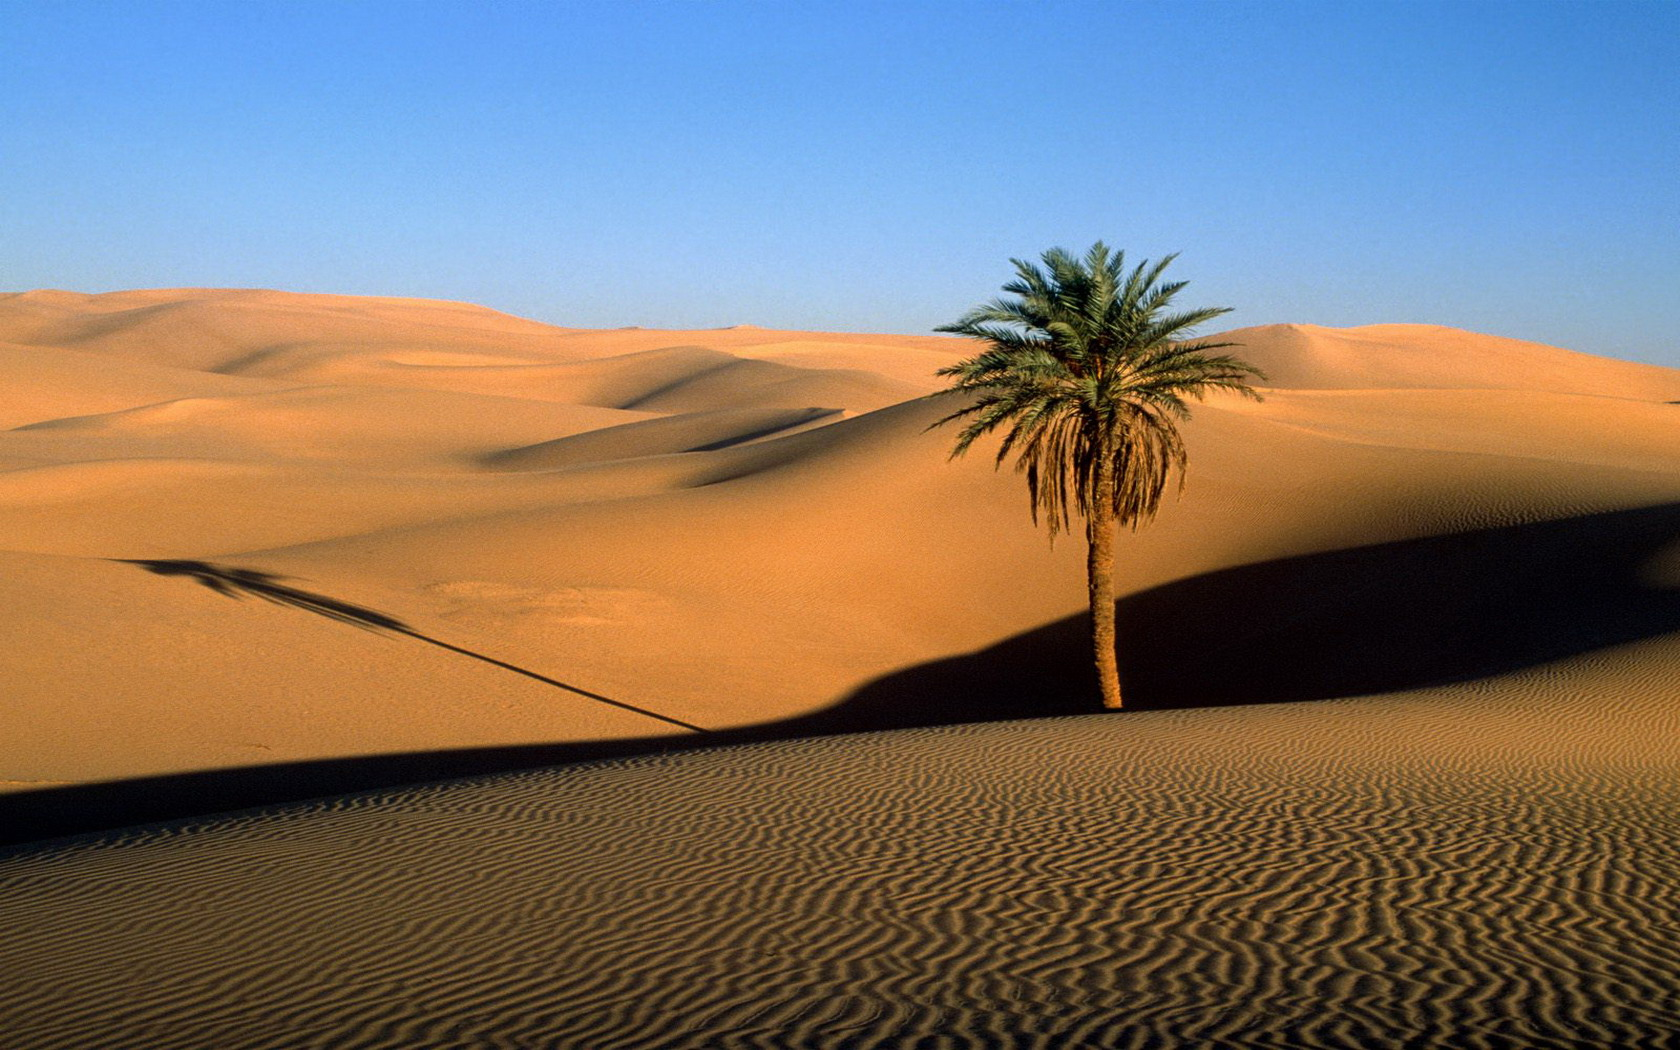 Lonely Palm in a Desert 254.2 Kb